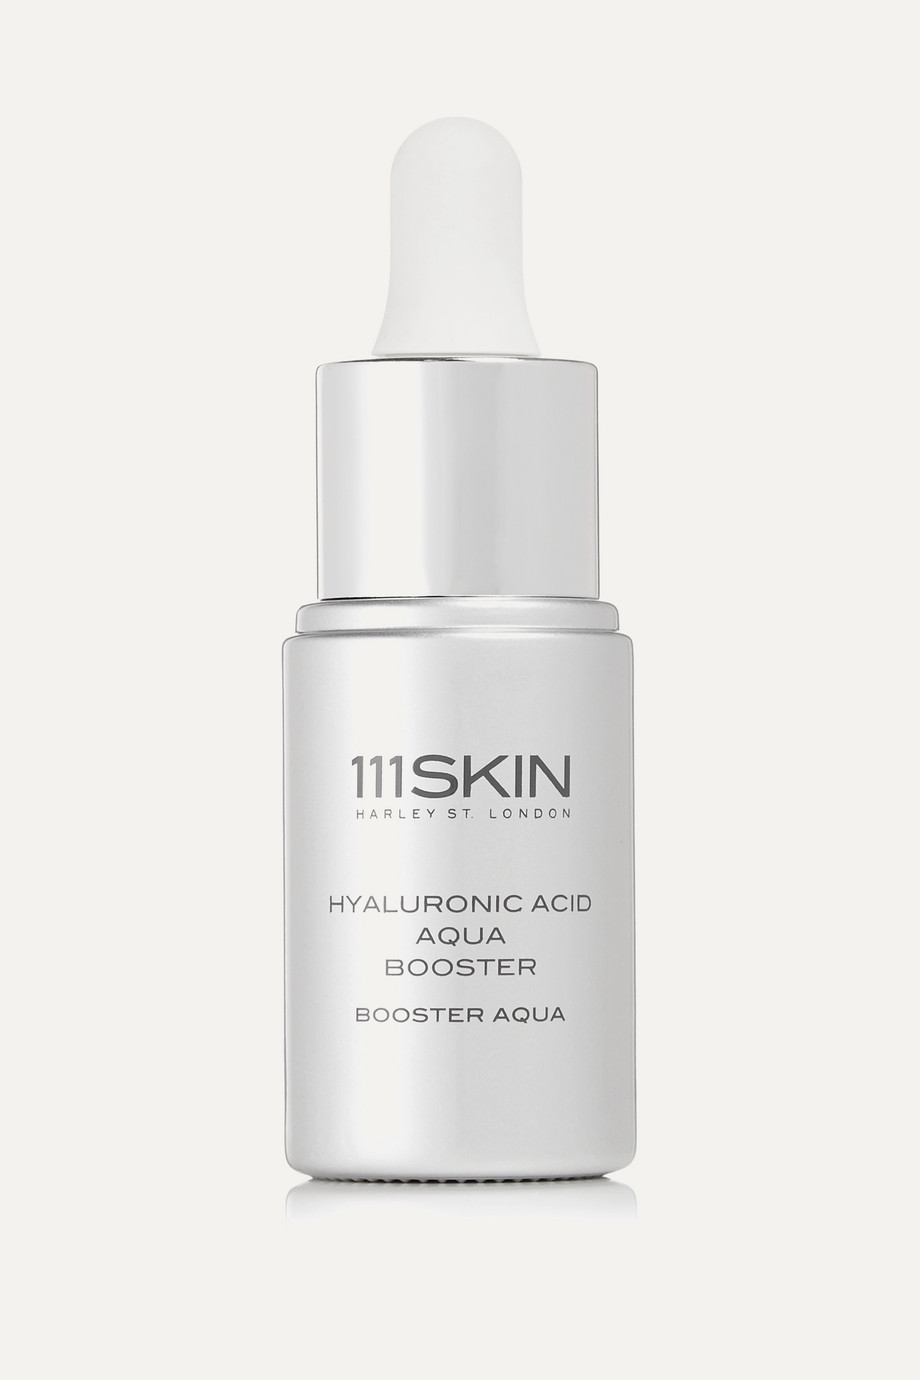 111SKIN Hyaluronic Acid Aqua Booster, 20ml